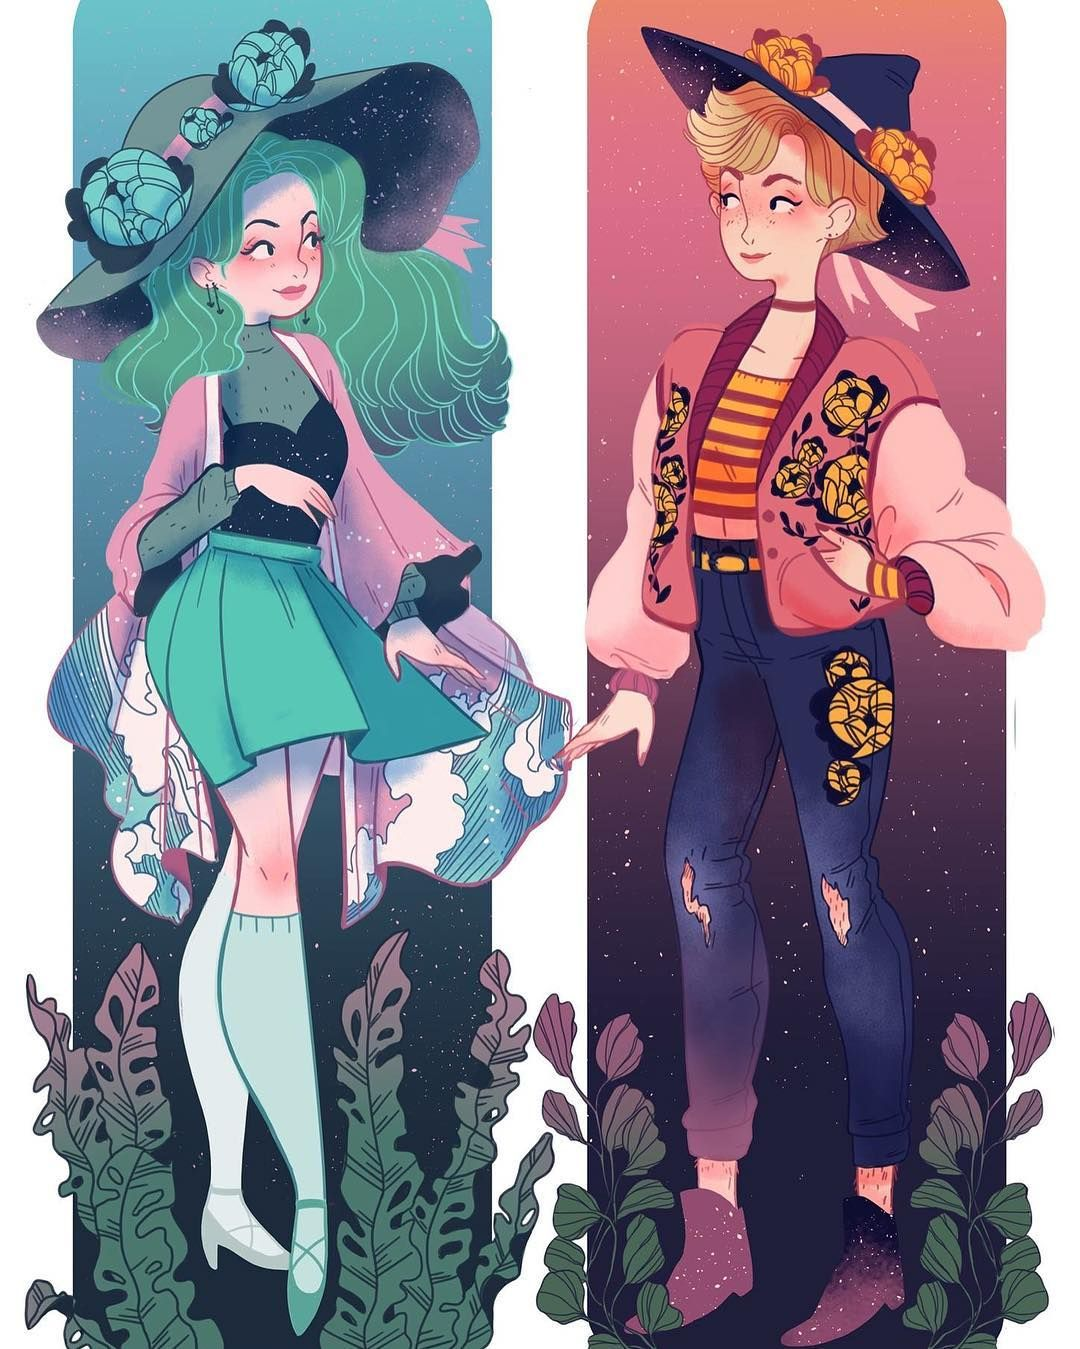 """8,863 Likes, 62 Comments - Lana  (@lanajay_art) on Instagram: """"Finallyyy finished my witchy #sailorneptune and #sailoruranus print!!! ✨ I'm planning to have…"""""""